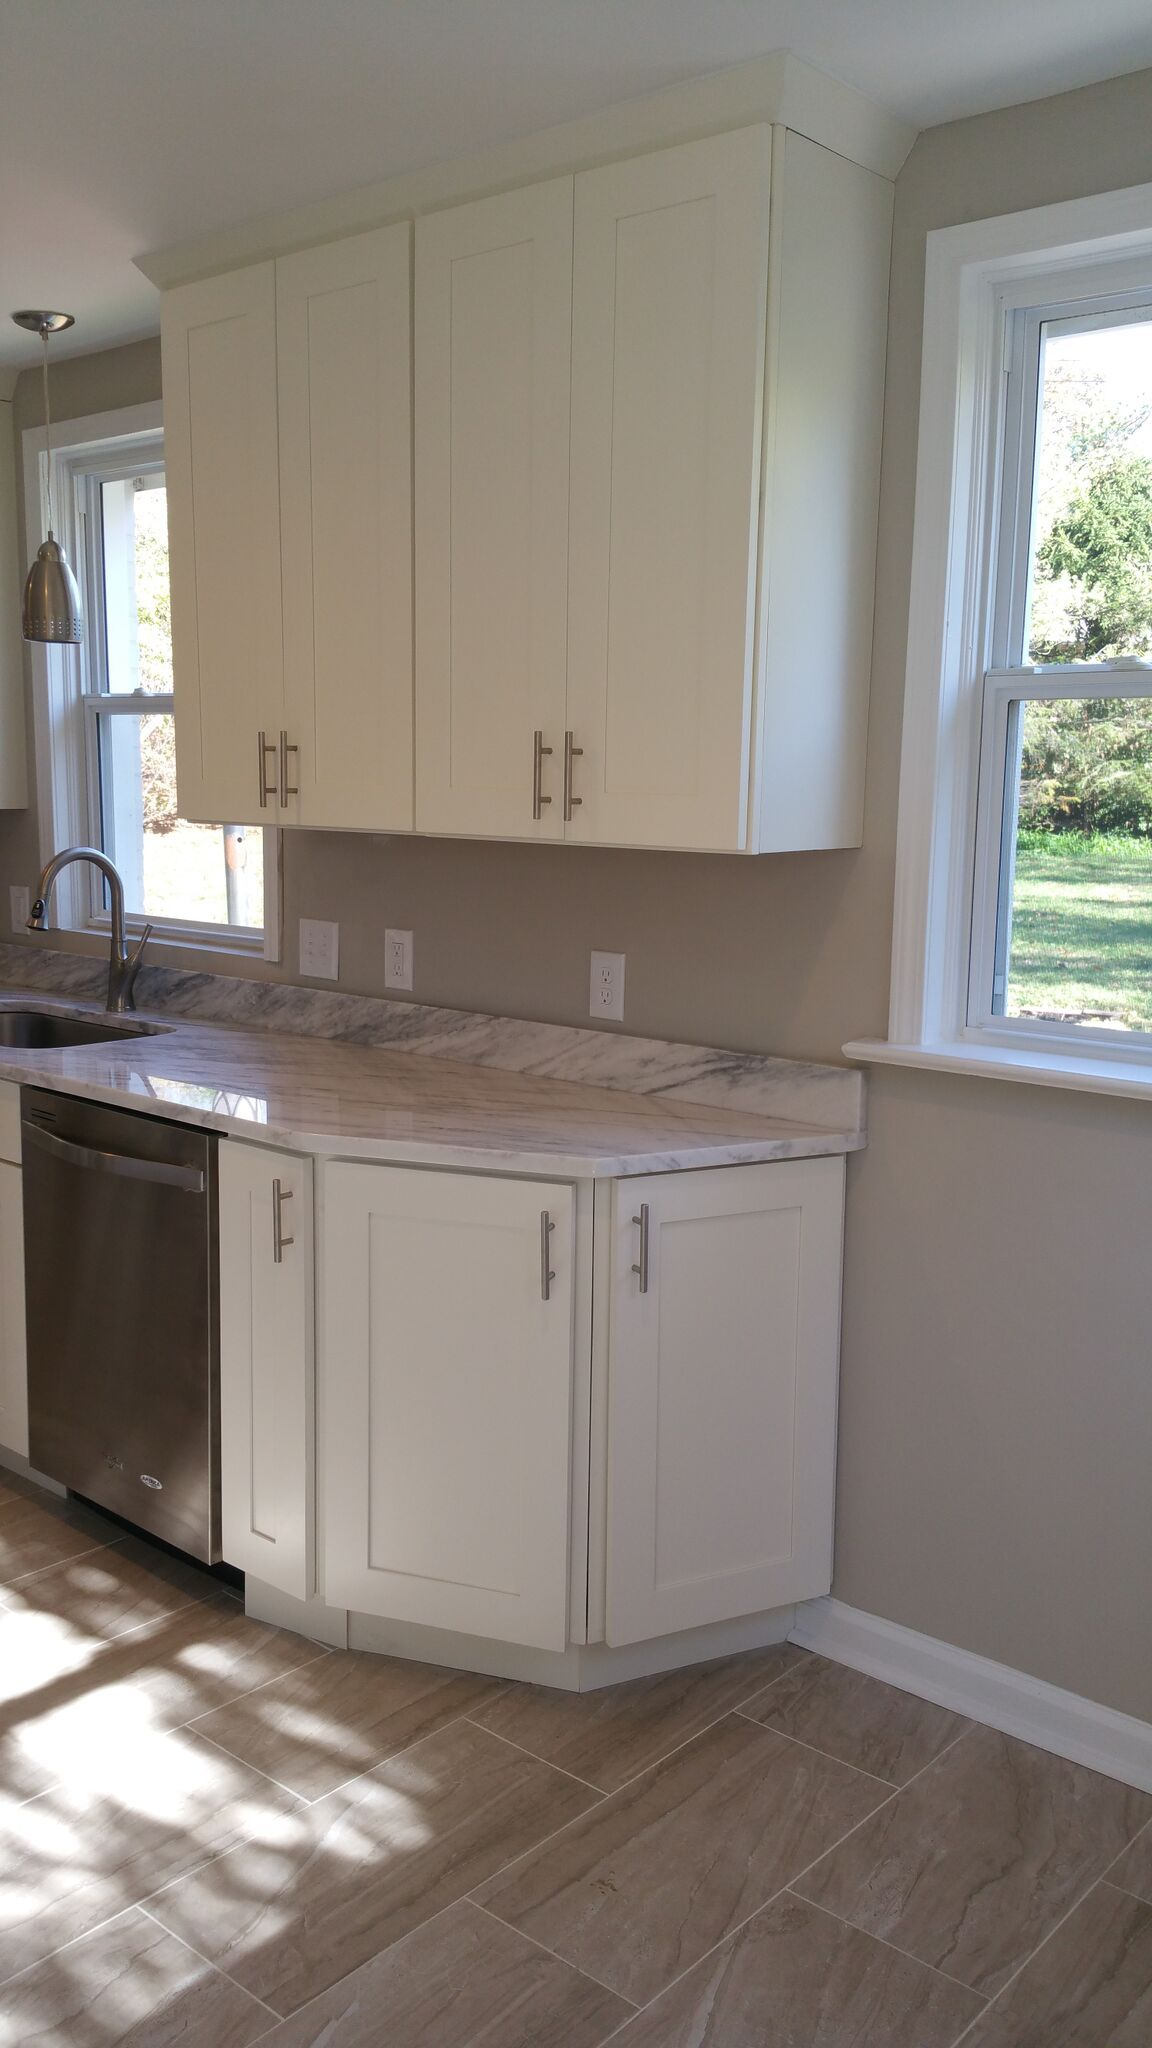 base end angle cabinet with images kitchen remodel small kitchen base cabinets beautiful on kitchen interior cabinets id=23884